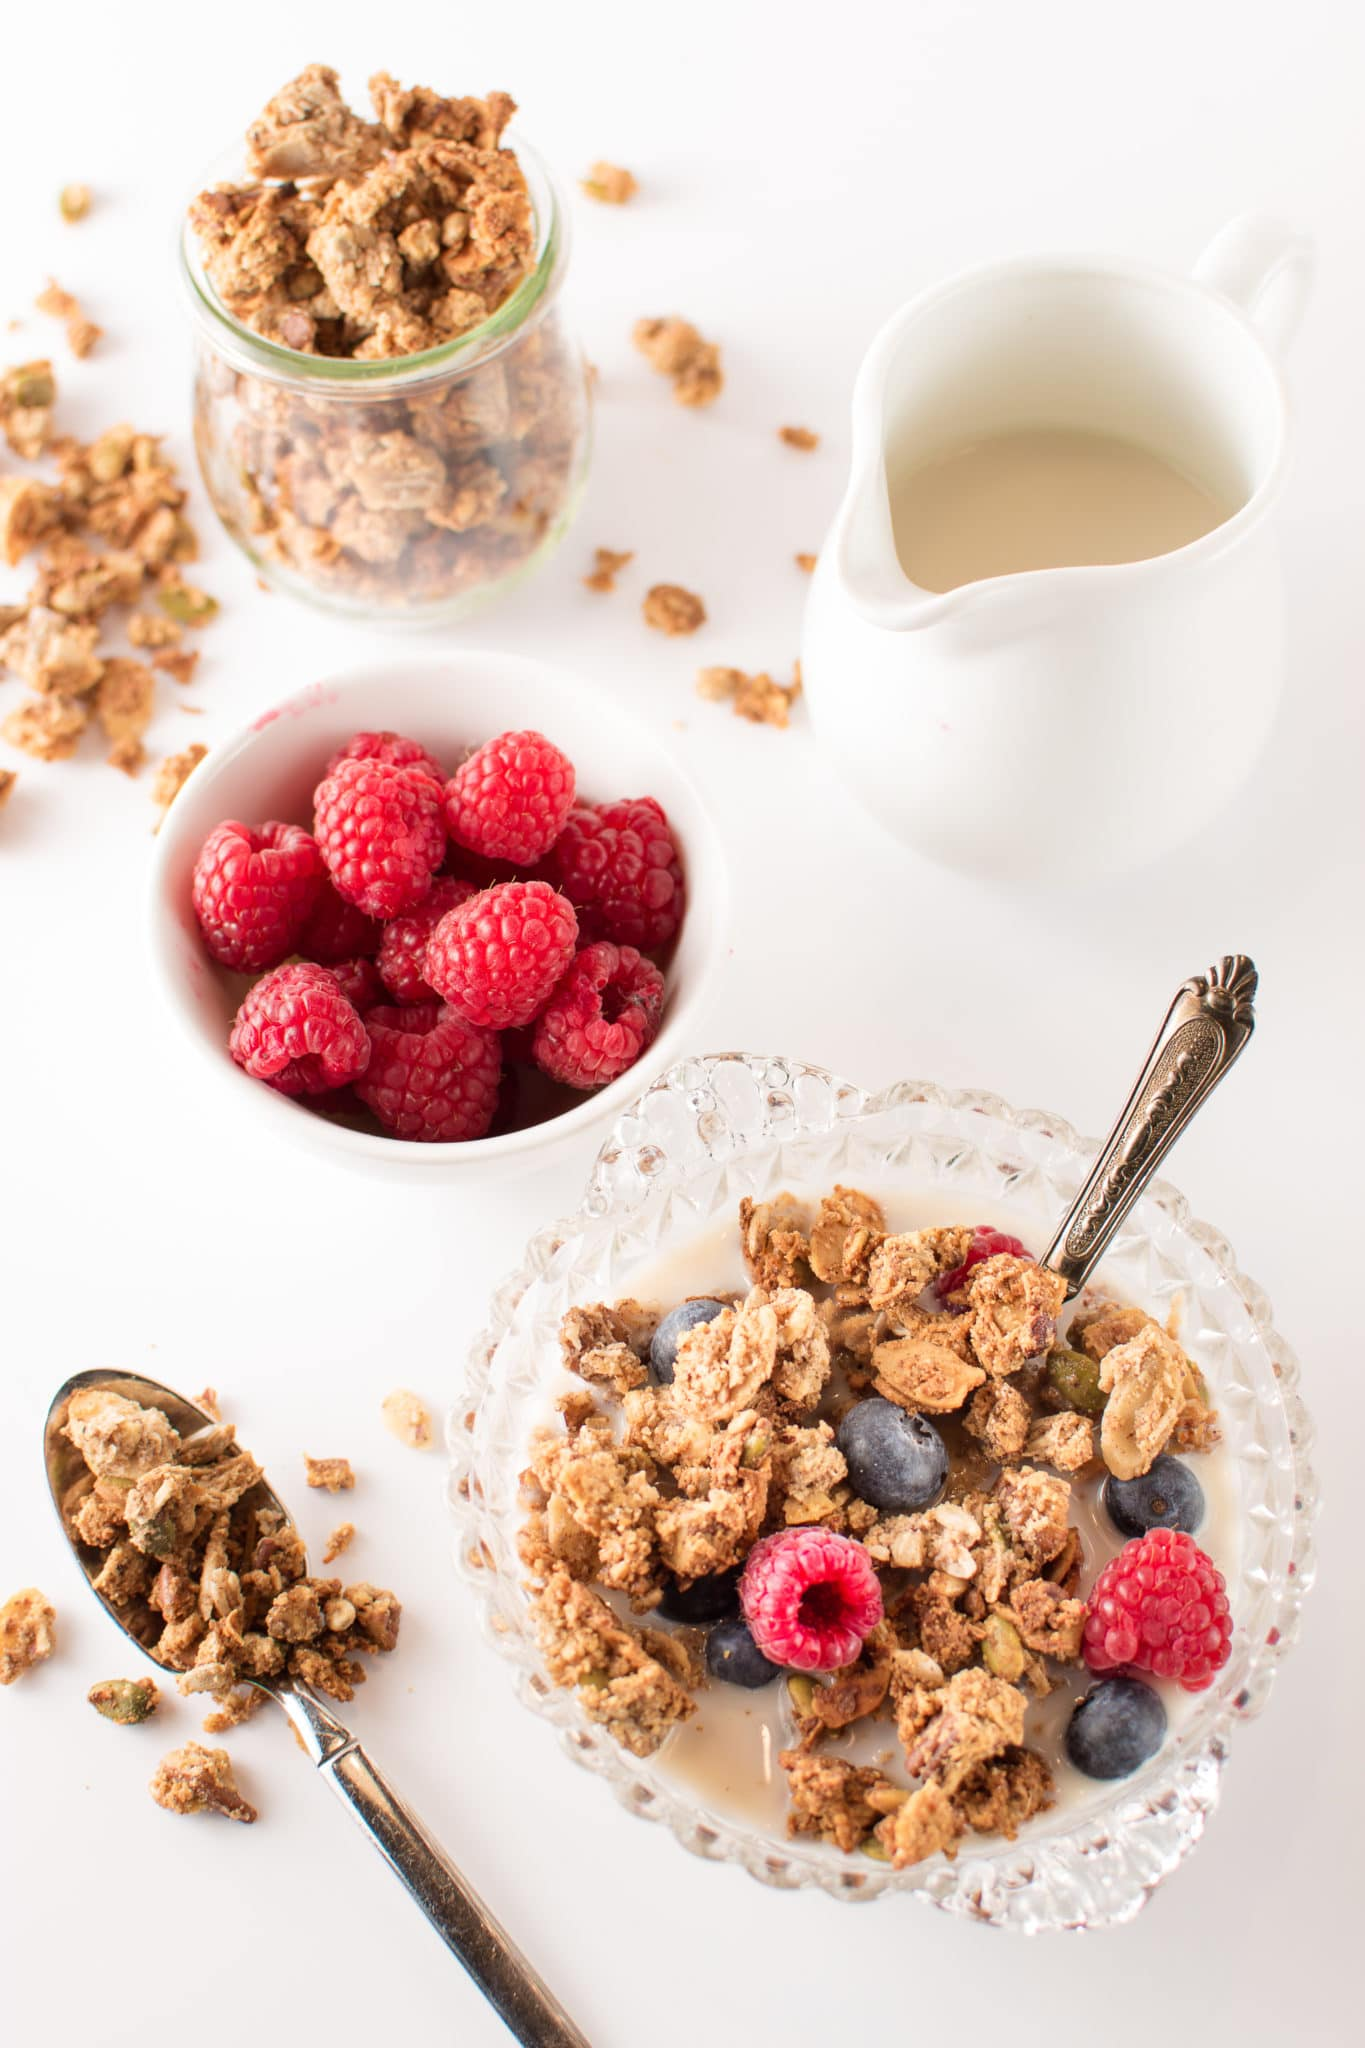 A bright white breakfast table with a bowls of low carb granola, fresh raspberries and almond milk.